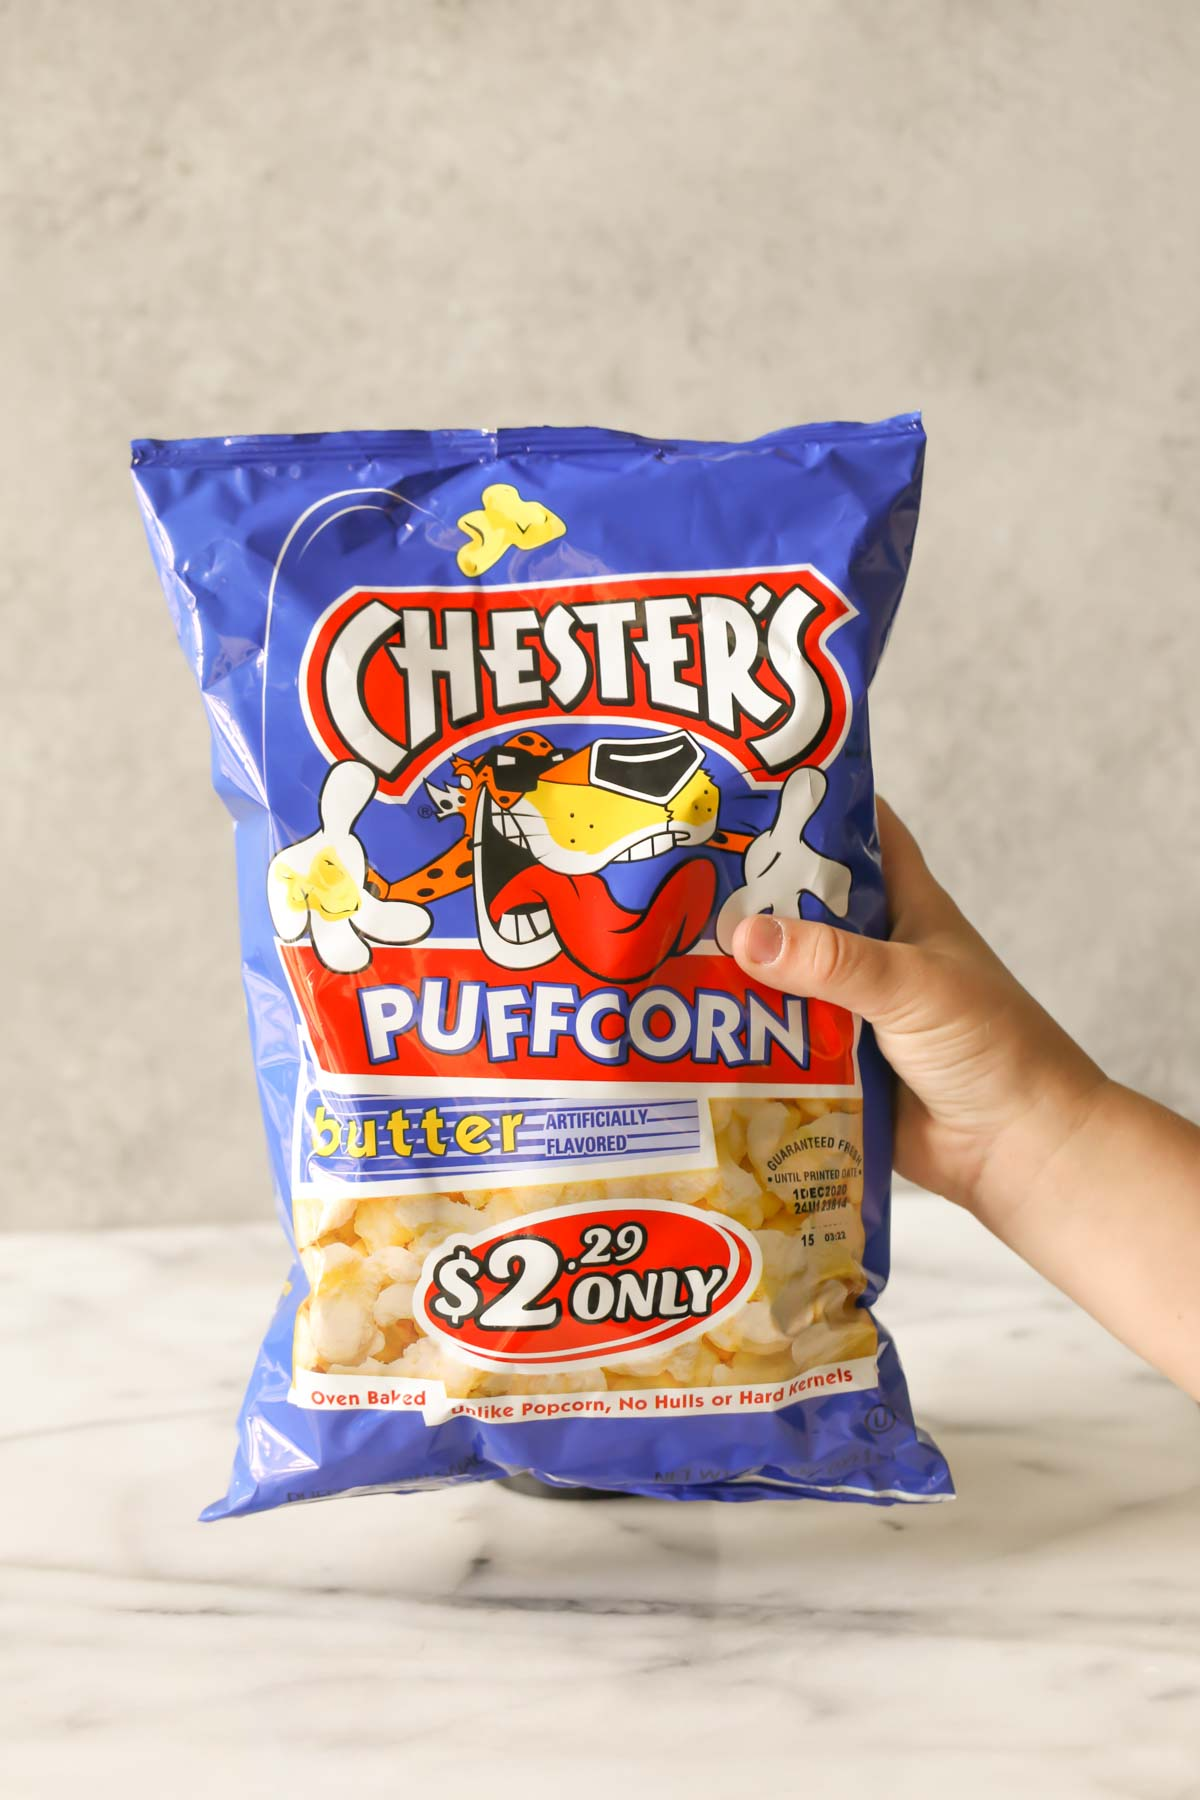 A bag of Chester's Puffcorn butter flavored - used in the Caramel Puff Corn recipe.